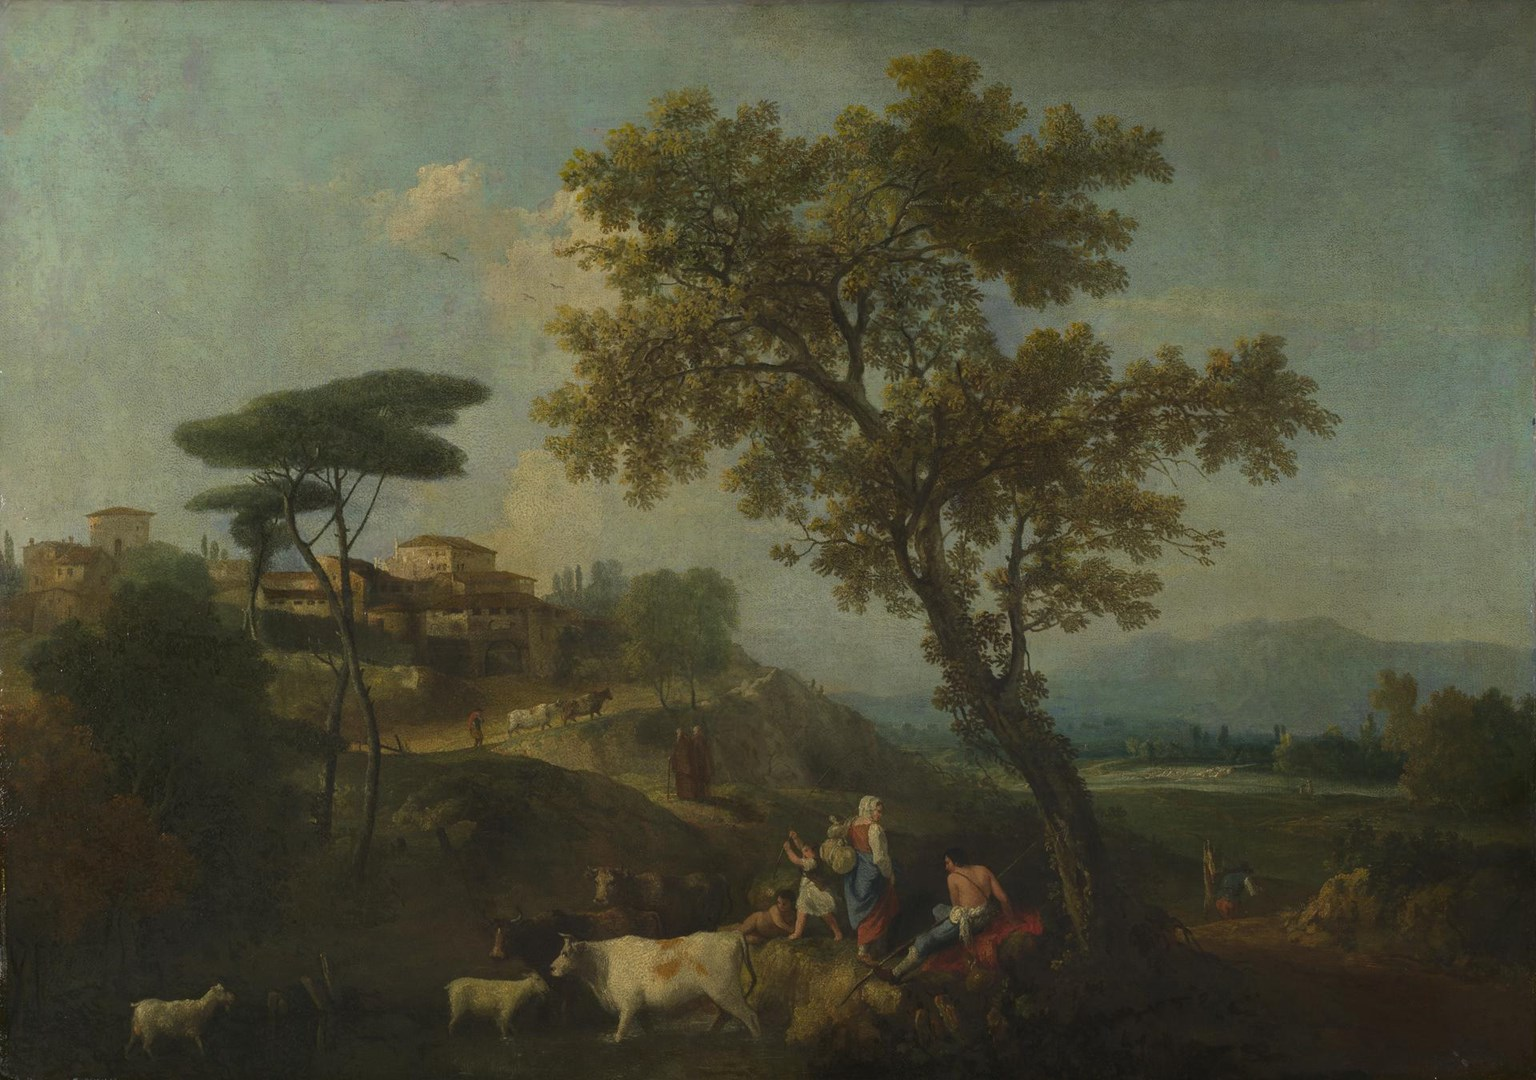 Landscape with Cattle and Figures by Francesco Zuccarelli